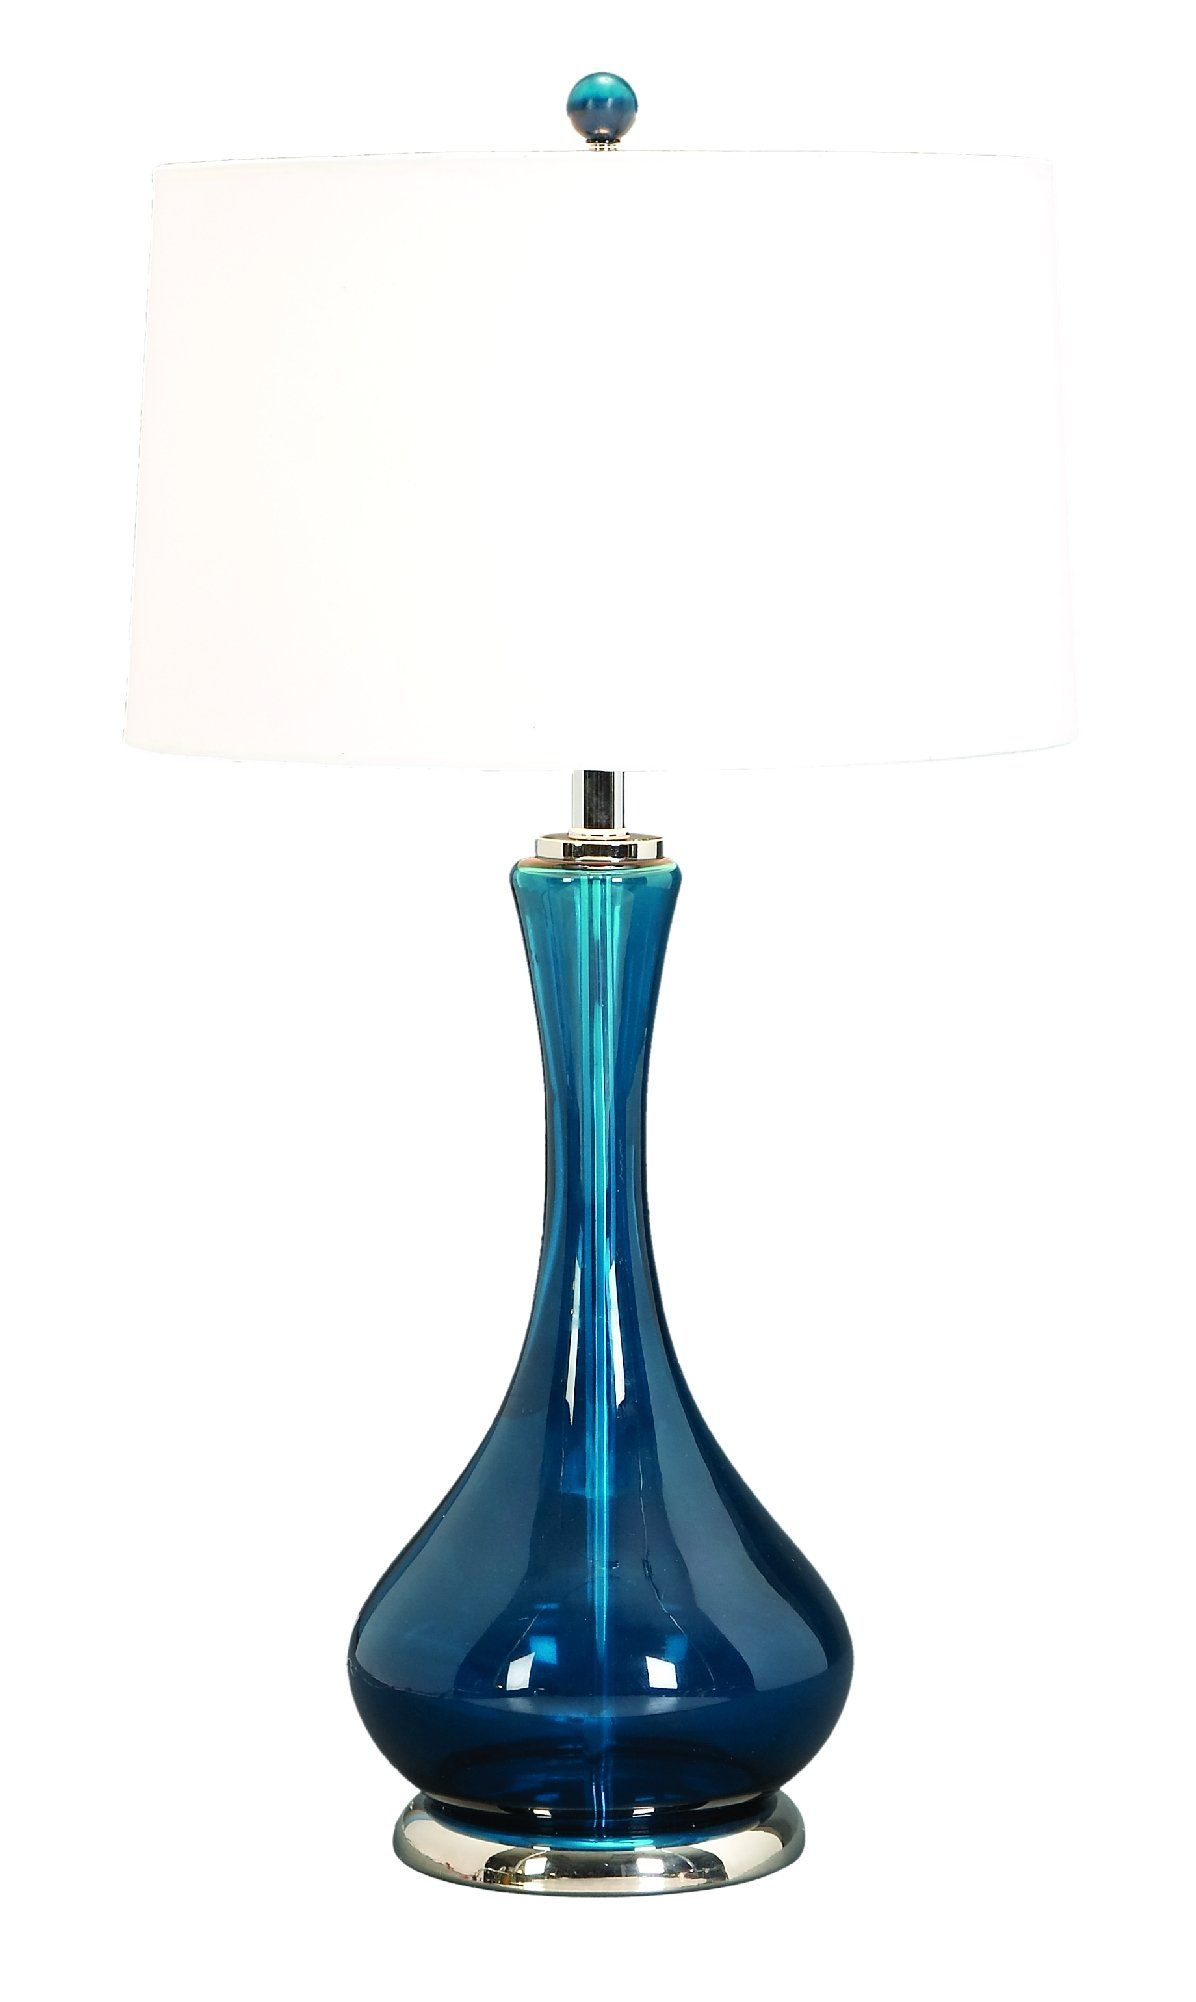 Glass Table Lamp A Living Style Statement (One Lamp) by Benzara - Lamps For Living Room - Amazon.com